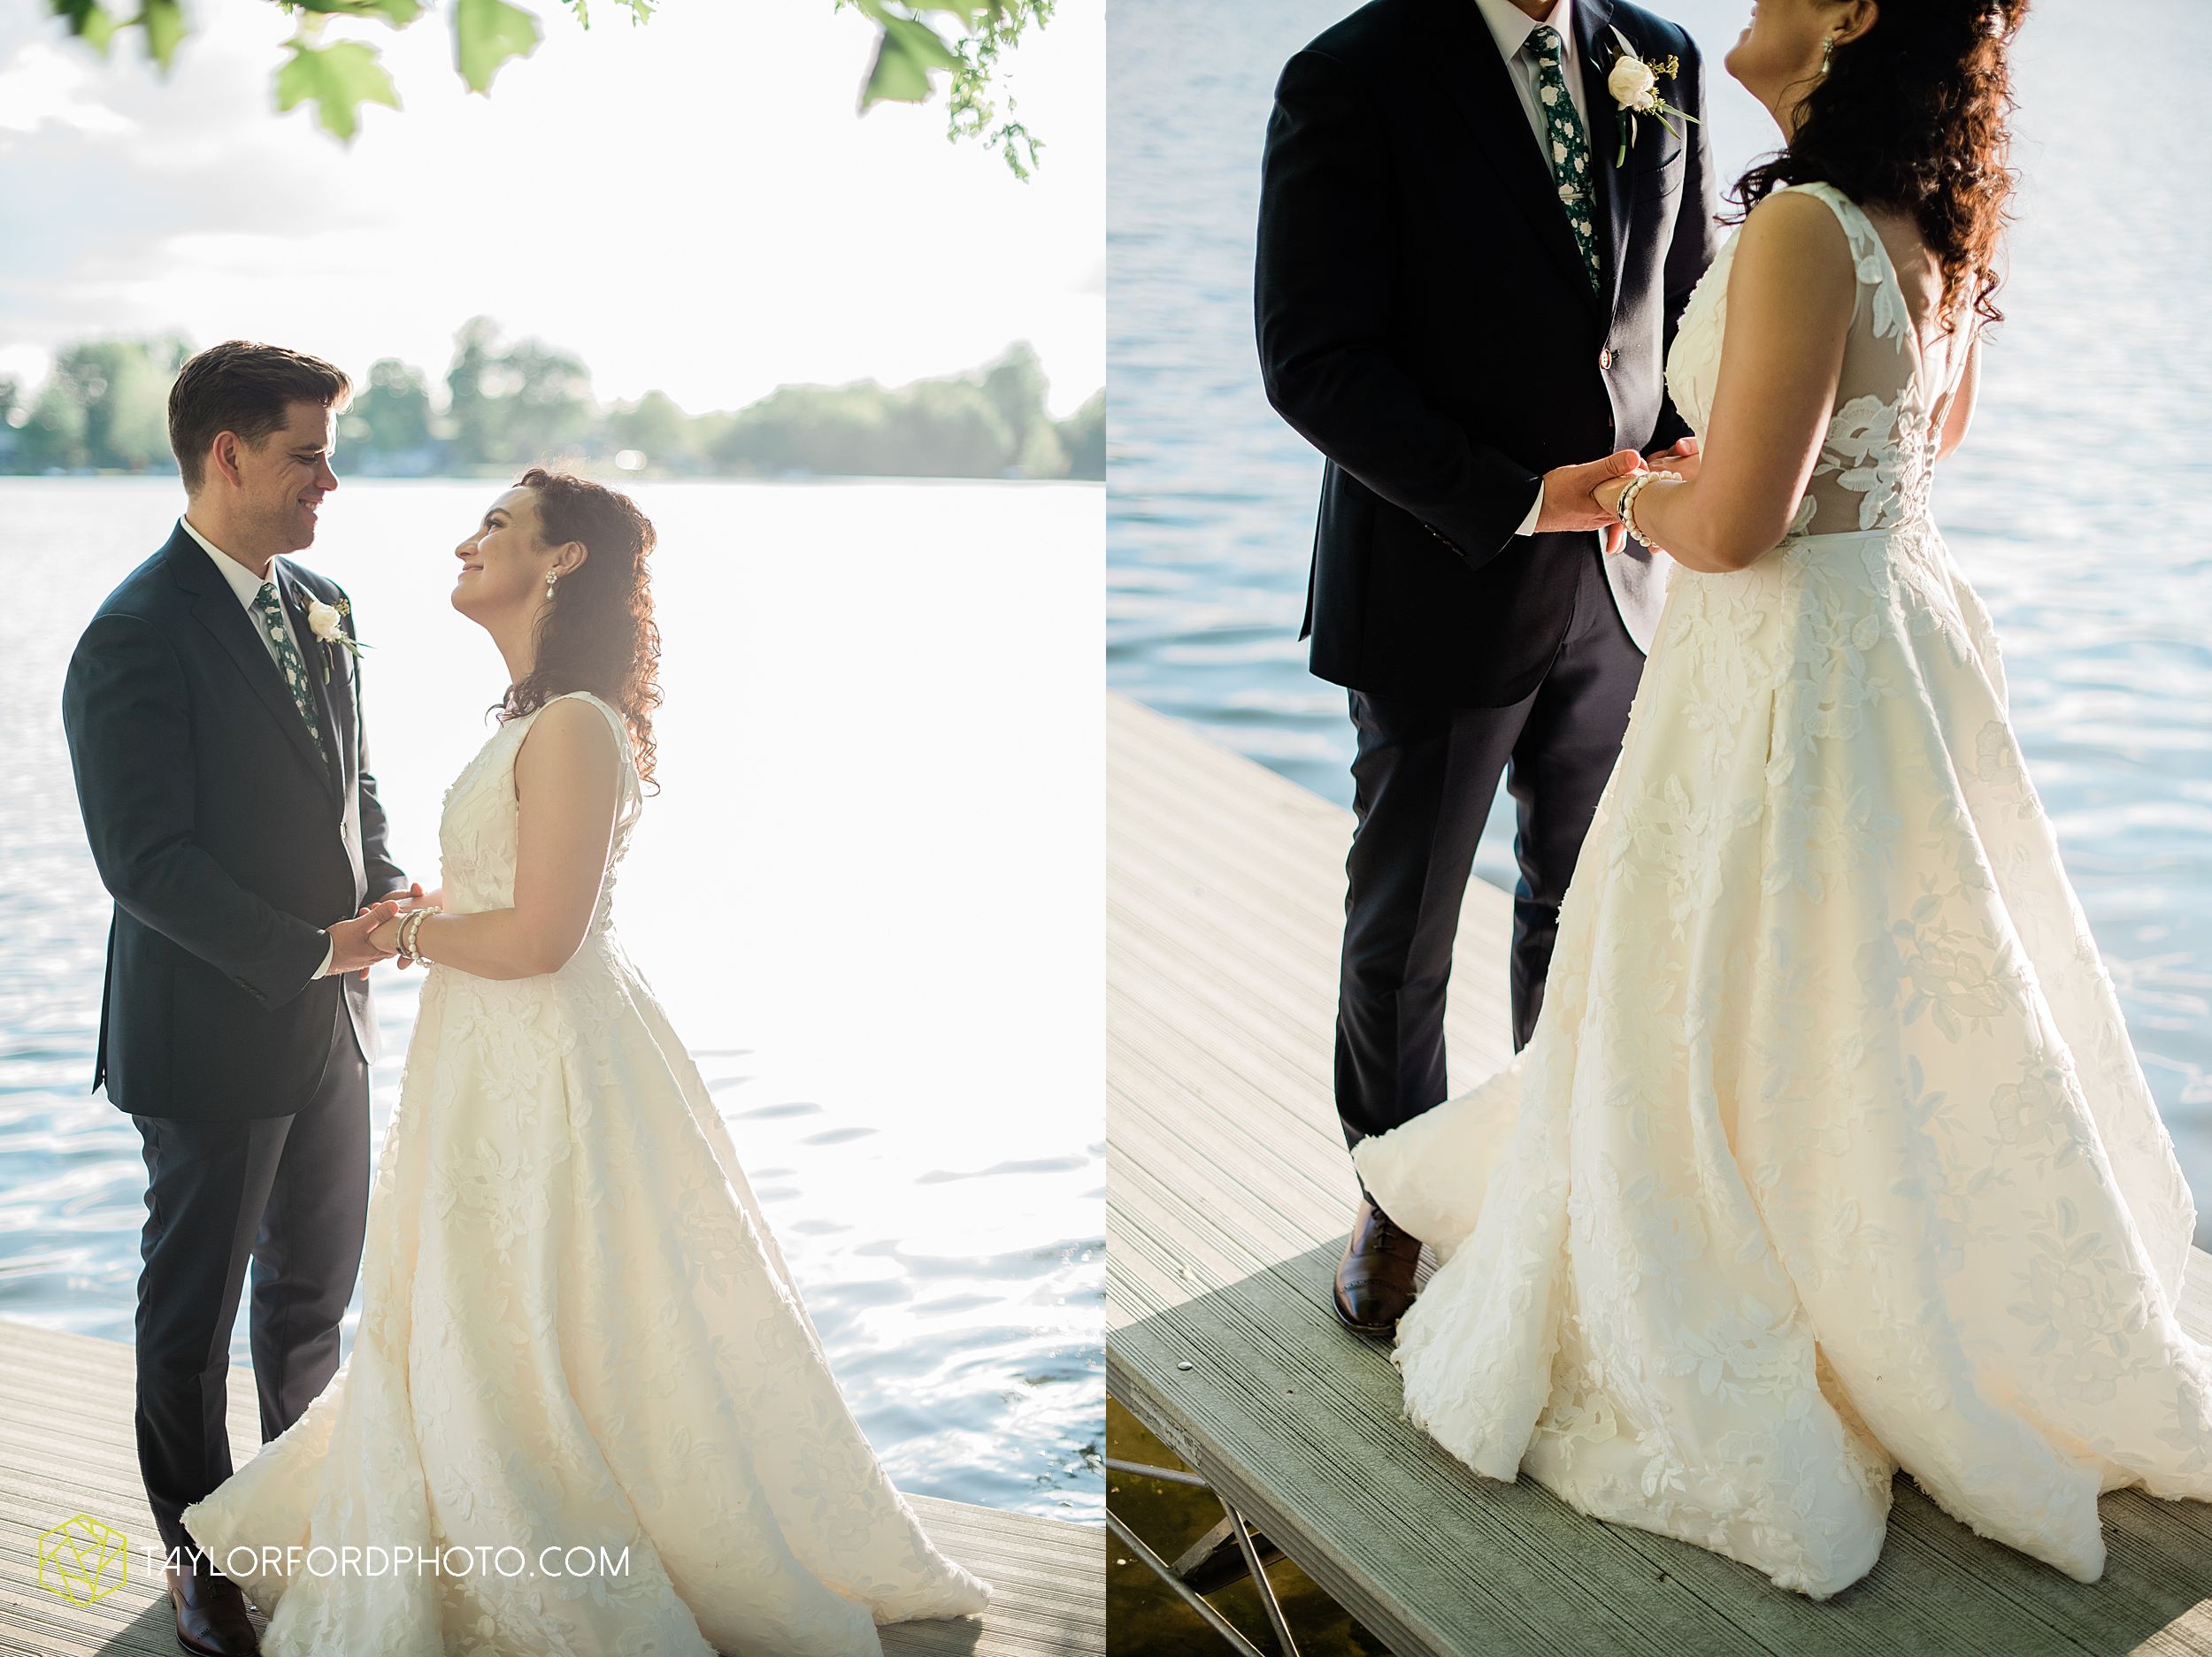 fort-recovery-ohio-saint-anthony-church-columbia-city-joseph-decuis-farmstead-tri-lakes-shriner-lake-wawasee-wedding-photographer-photography-taylor-ford-hirschy-photographer_2930.jpg